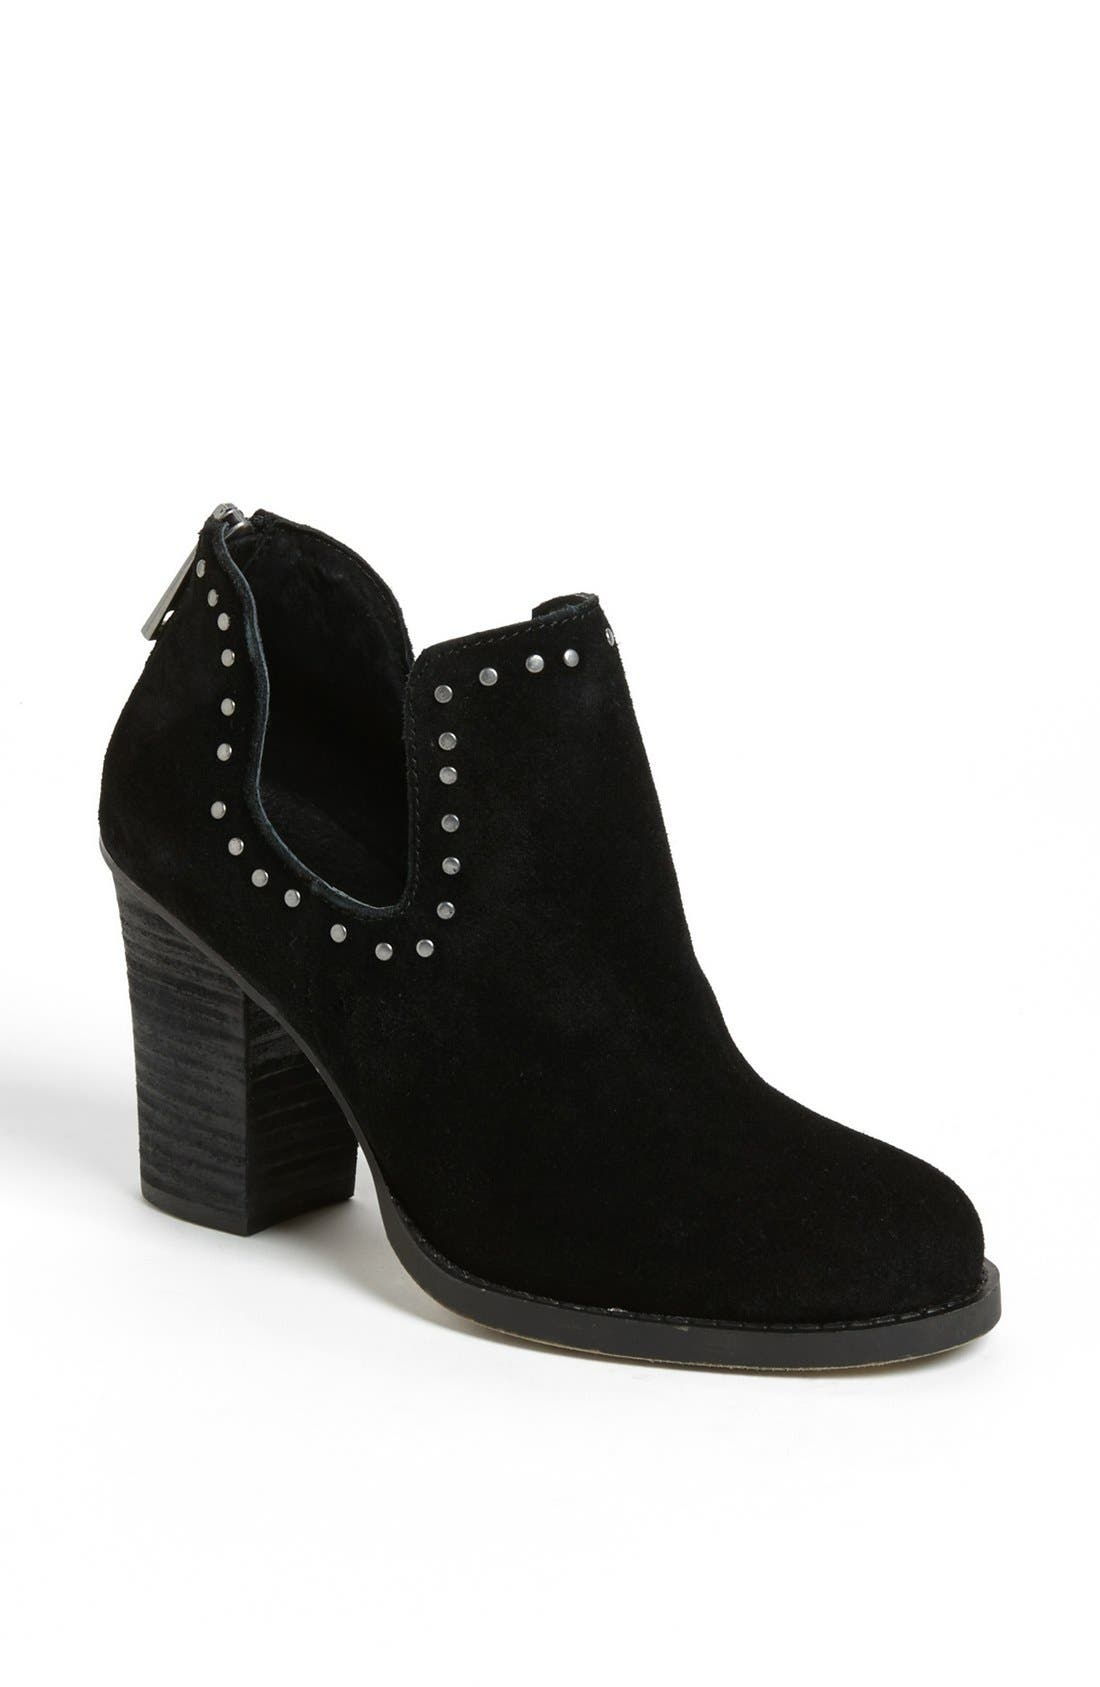 Main Image - Chinese Laundry 'Bradyn' Boot (Limited Edition)